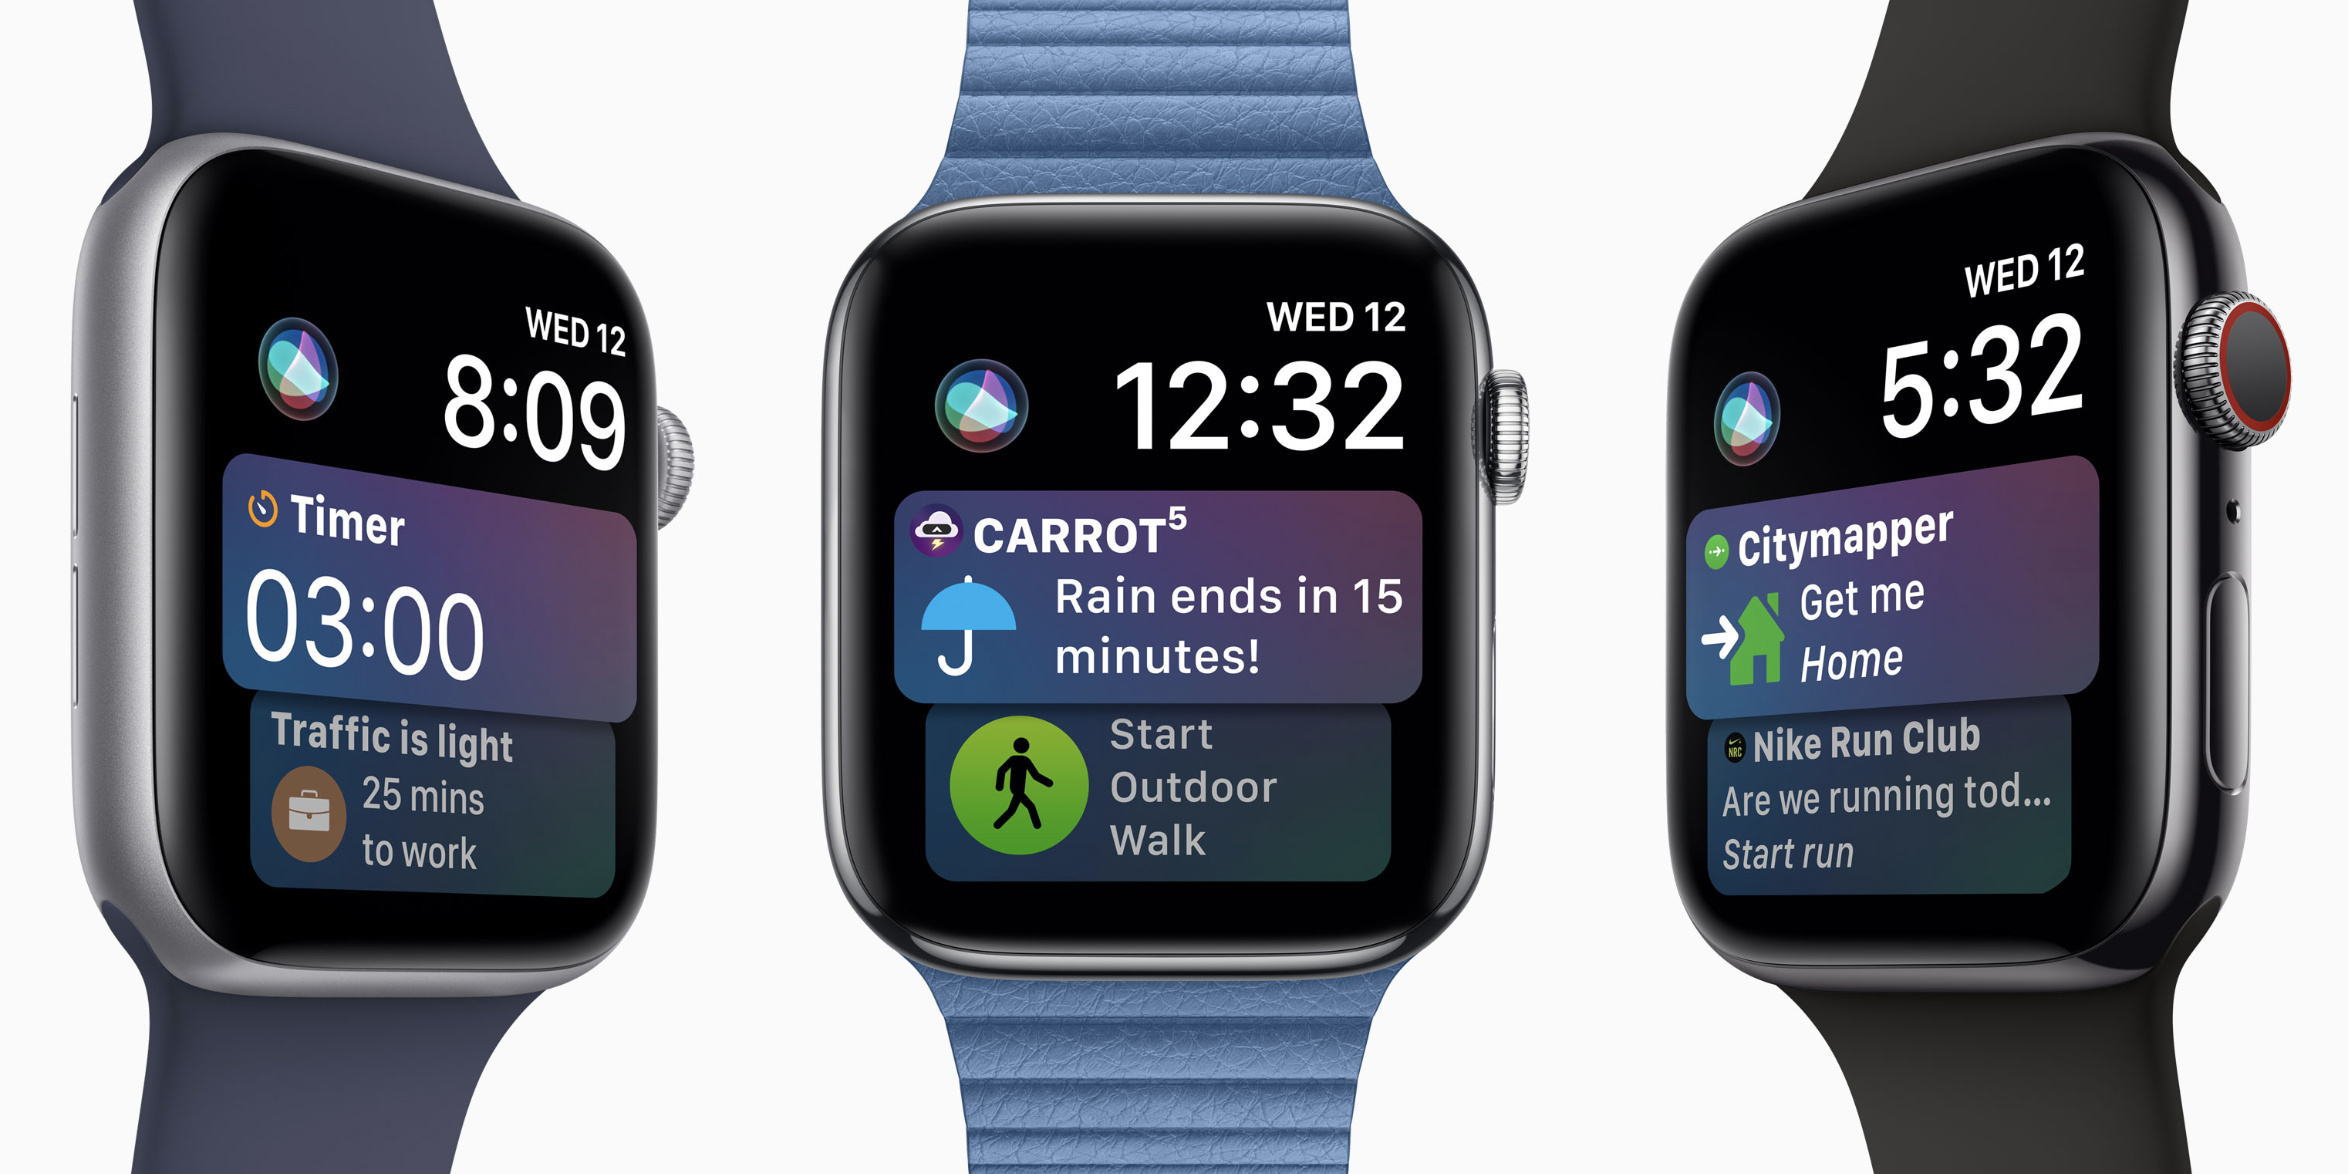 Apple Watch Series 4 sees some of the best prices to date, take $70 off various styles